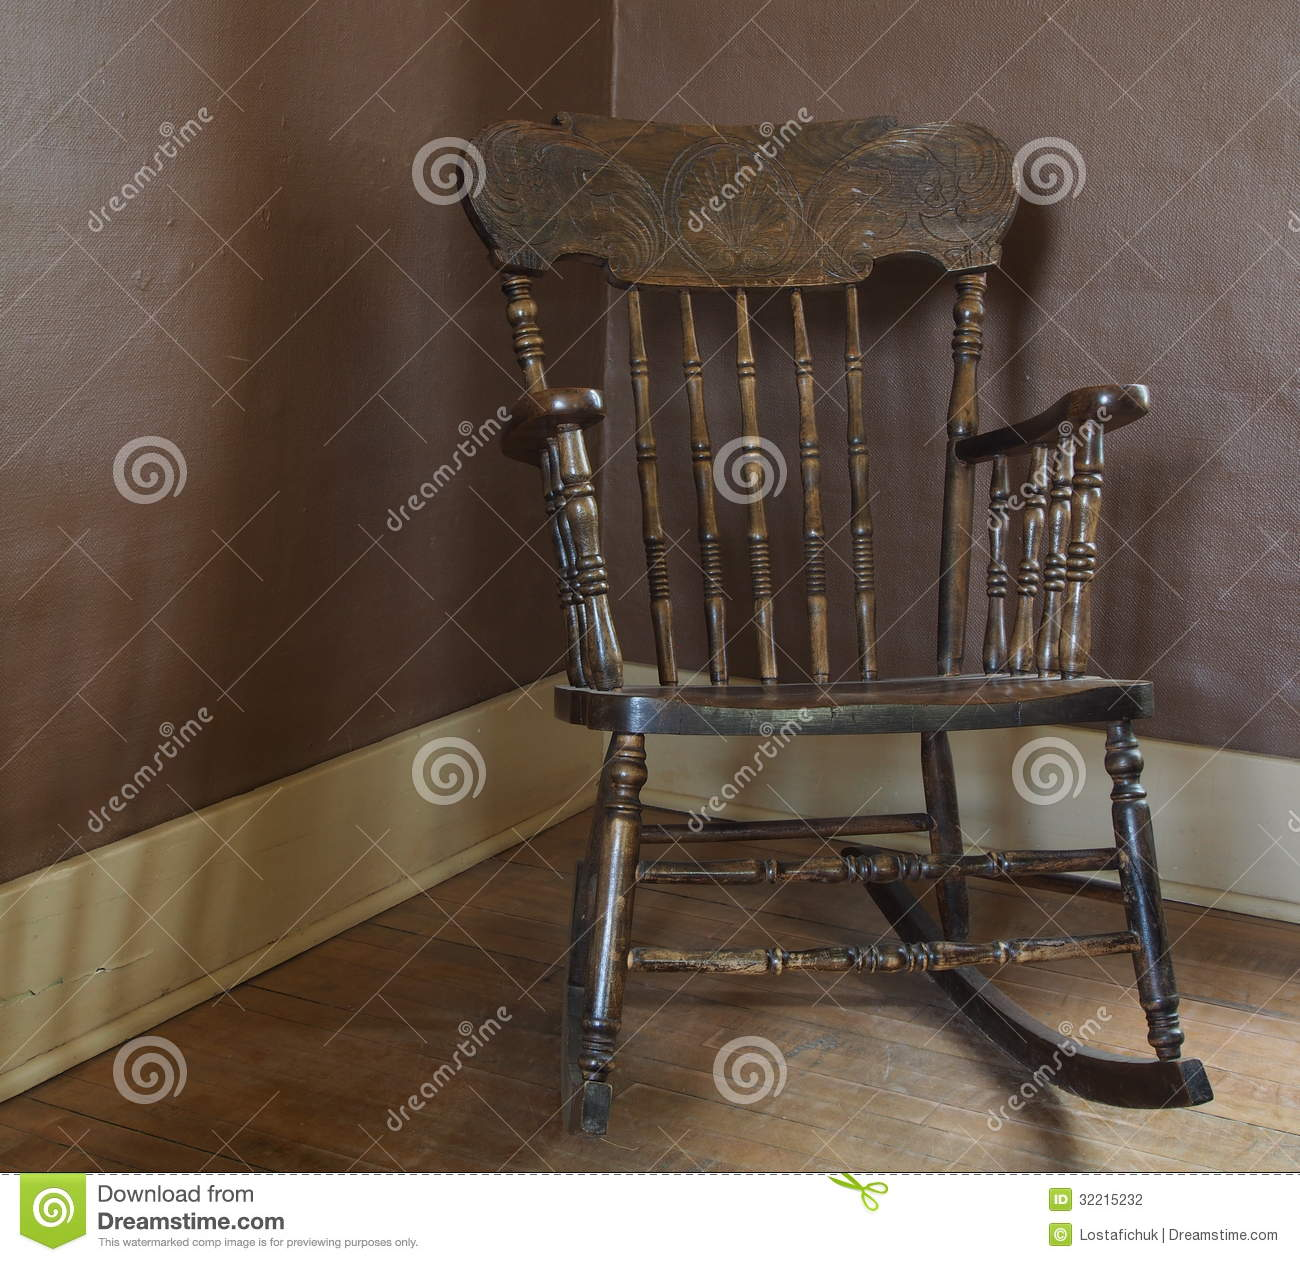 Astounding Antique Rocking Chair Stock Photo Image Of Manufactured Download Free Architecture Designs Rallybritishbridgeorg